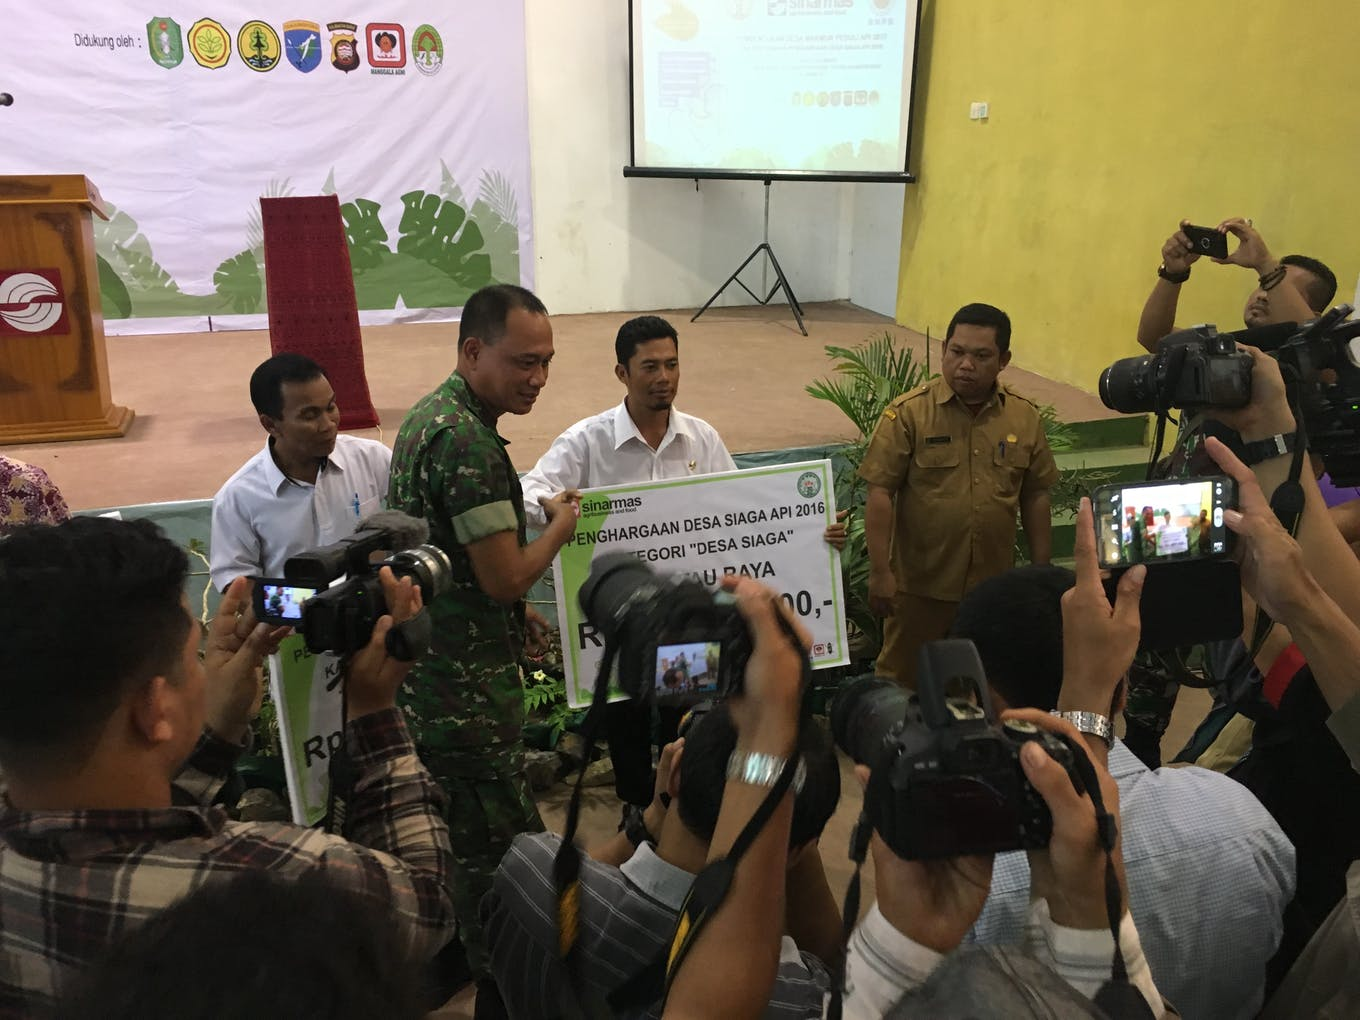 A cheque for IDR 100 million (US$7,500) is awarded to village representatives living in a GAR concession in West Kalimantan. The award is for keeping their village fire free.